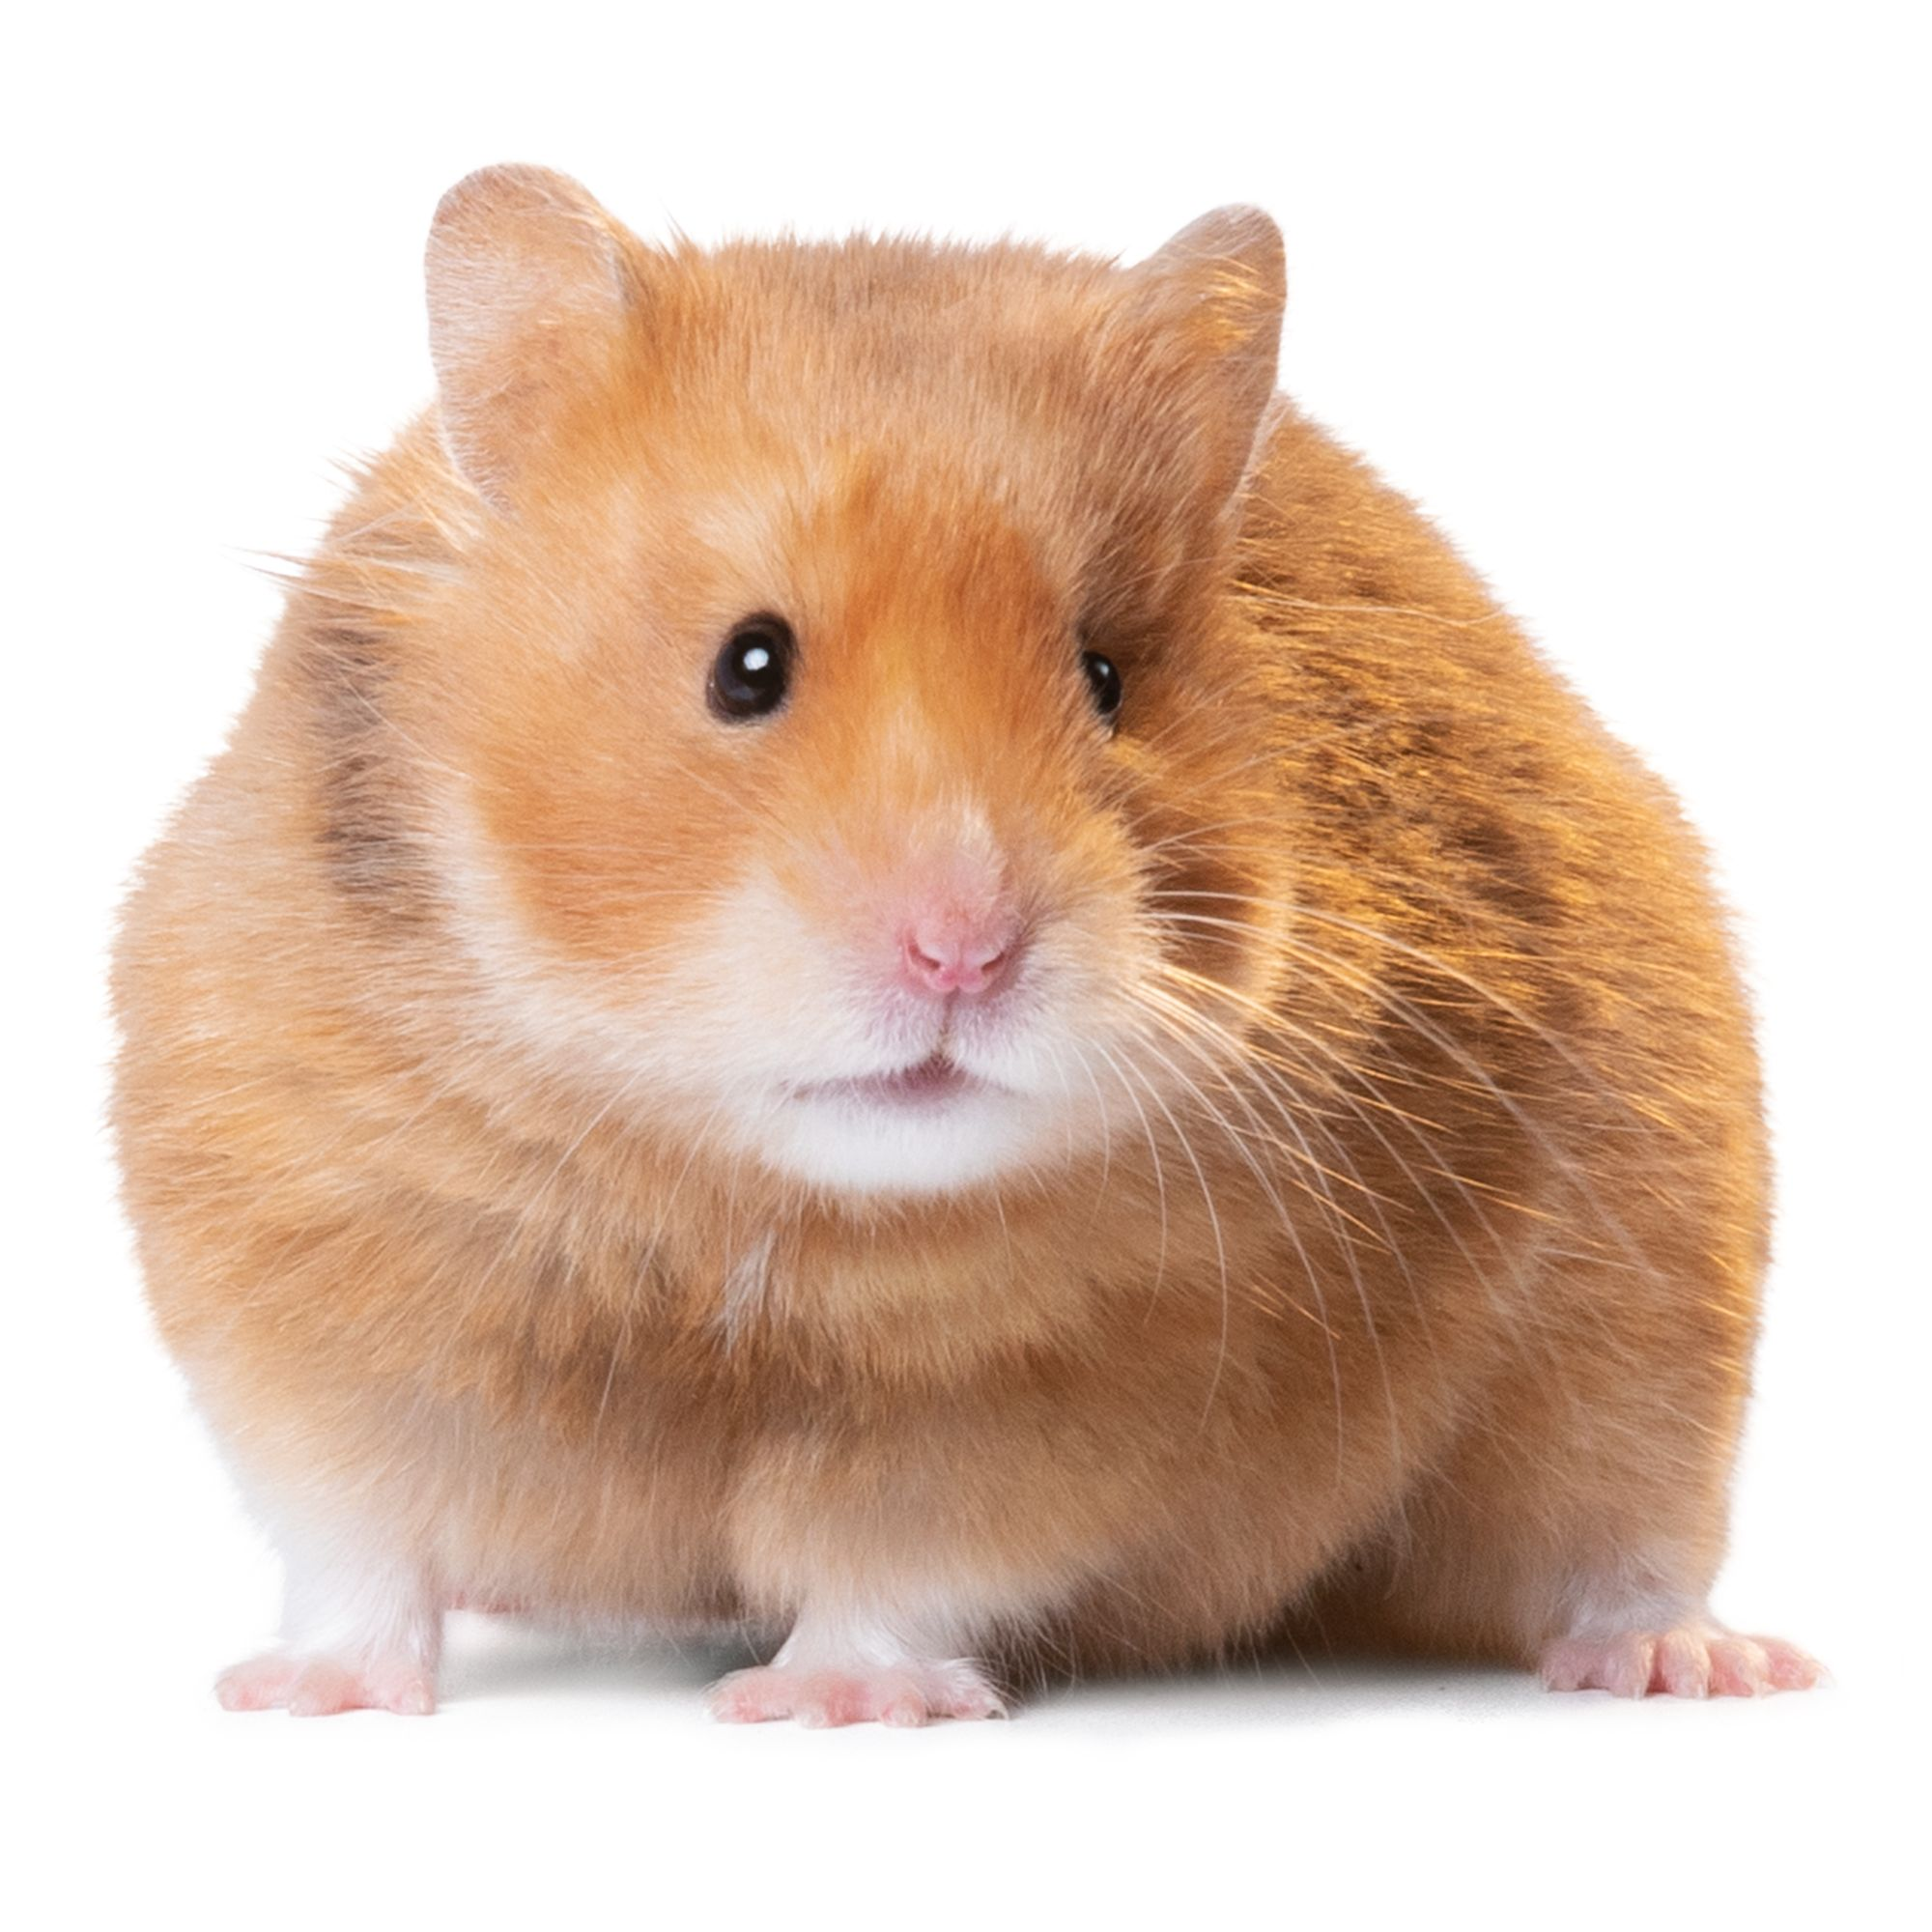 Short Haired Hamster Small Pet Hamsters Guinea Pigs More Petsmart